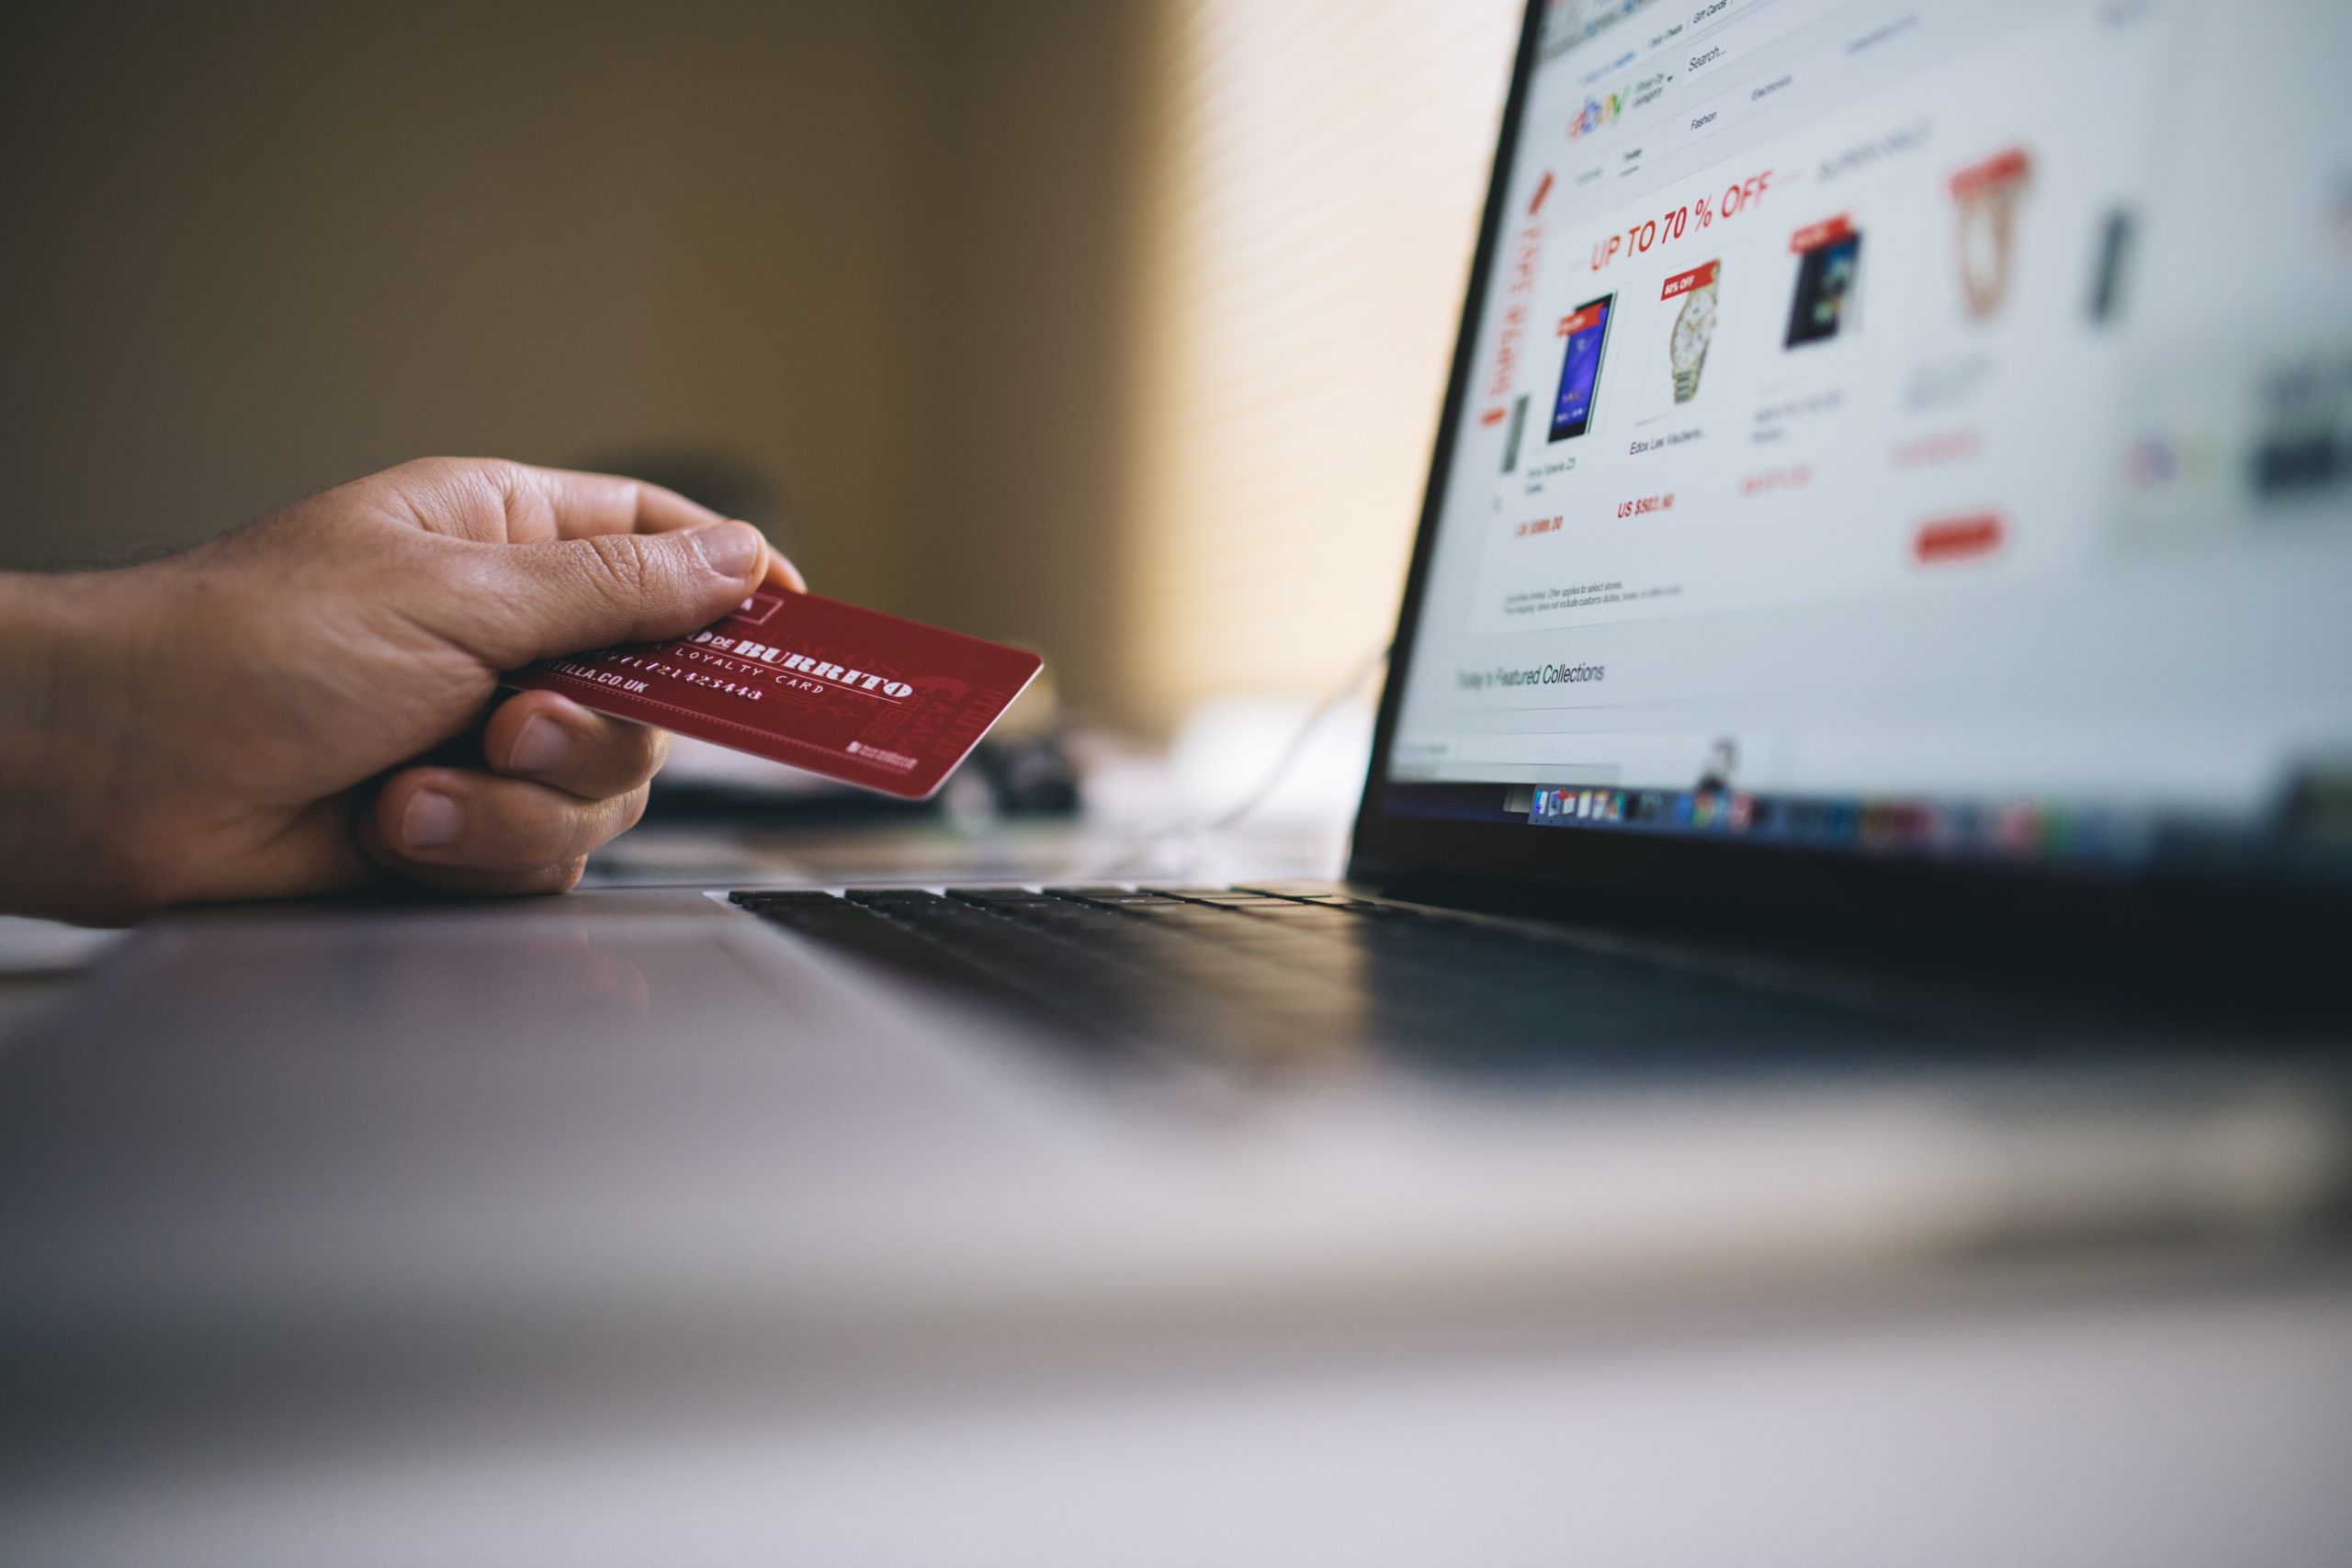 A shopper changing their address on online shopping sites.